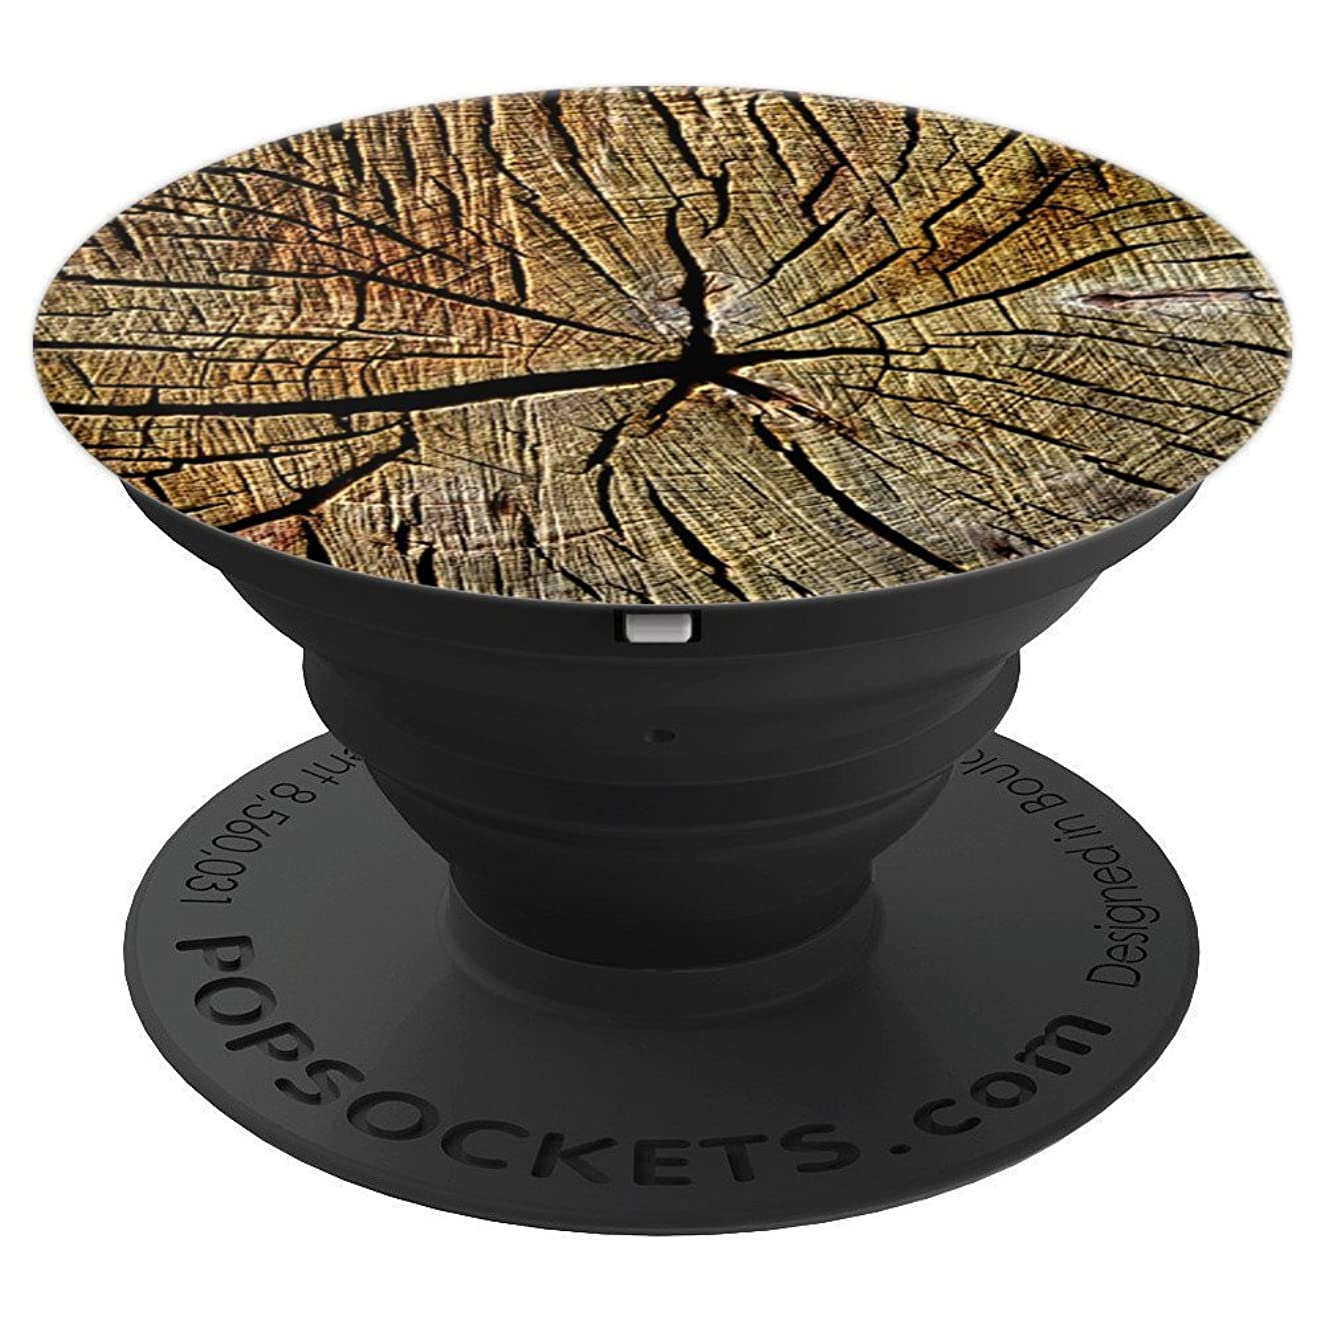 Pop Socket Wood Grain. Wooden Design. Wood Look - PopSockets Grip and Stand for Phones and Tablets